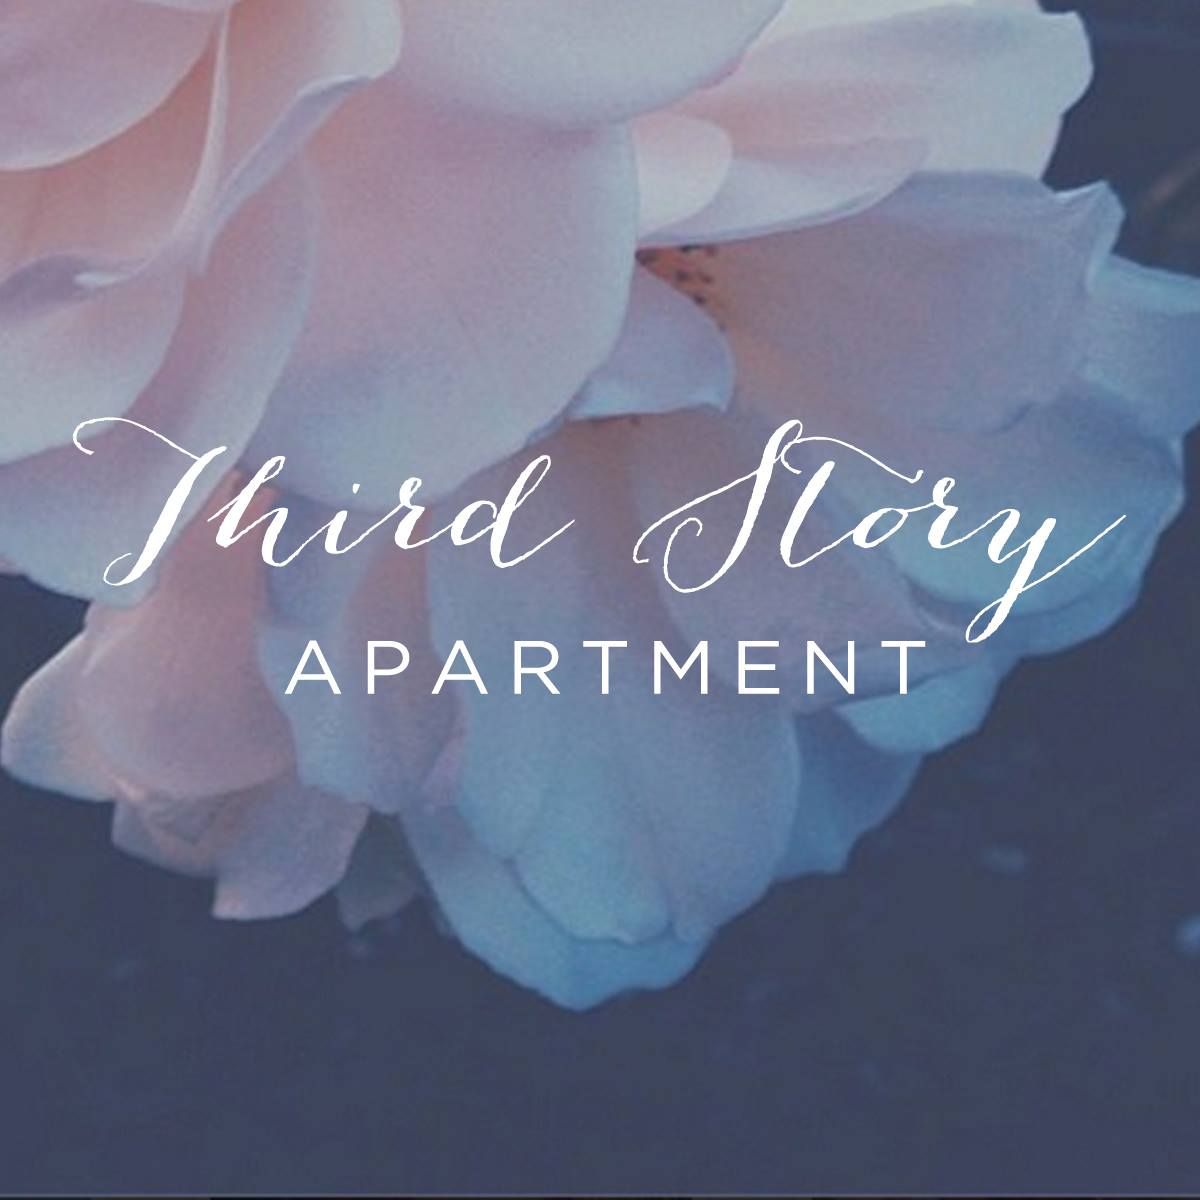 Third Story Apartment - Lindsey's designs stand out from the crowd—not only does she put incredible detail into her custom sites, but she also creates collateral and branding materials for you to give you a well-rounded and cohesive brand, both online and offline. My favorite site she's created is: www. Brooketaelor.com. I discovered Lindsey's designs through the wonderful world of Pinterest!